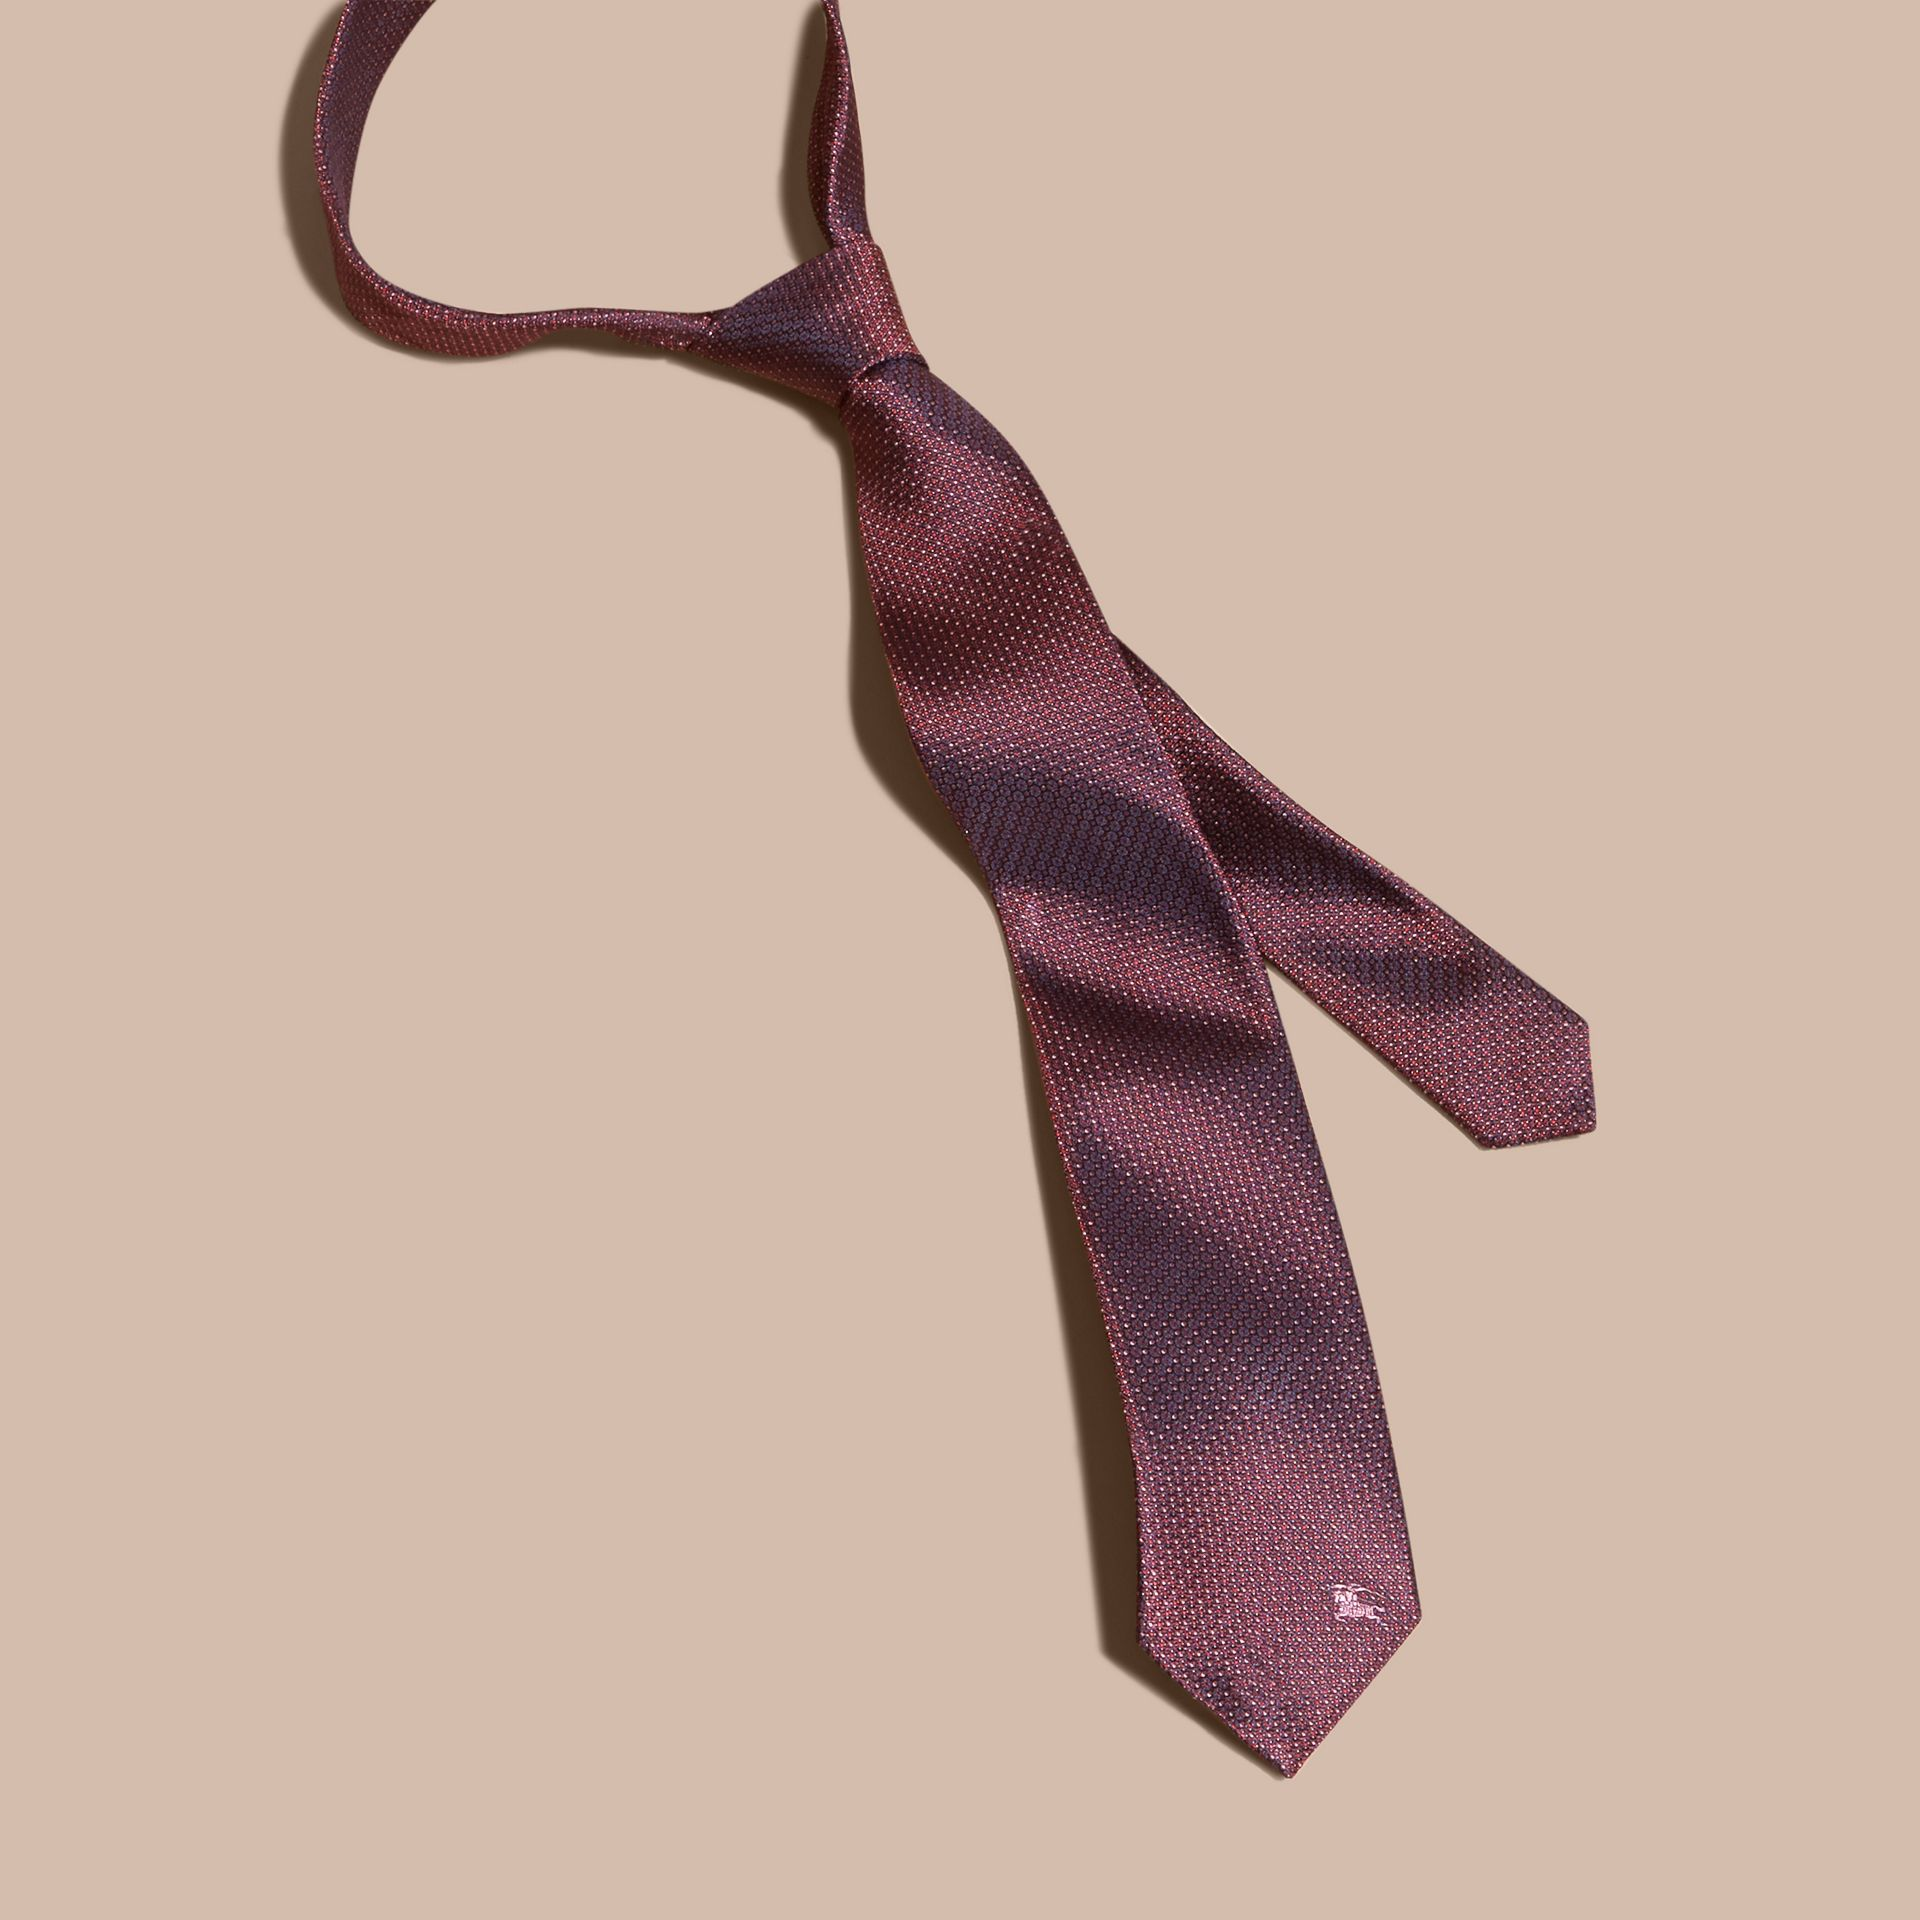 Modern Cut Patterned Silk Tie in Deep Claret - Men | Burberry - gallery image 1